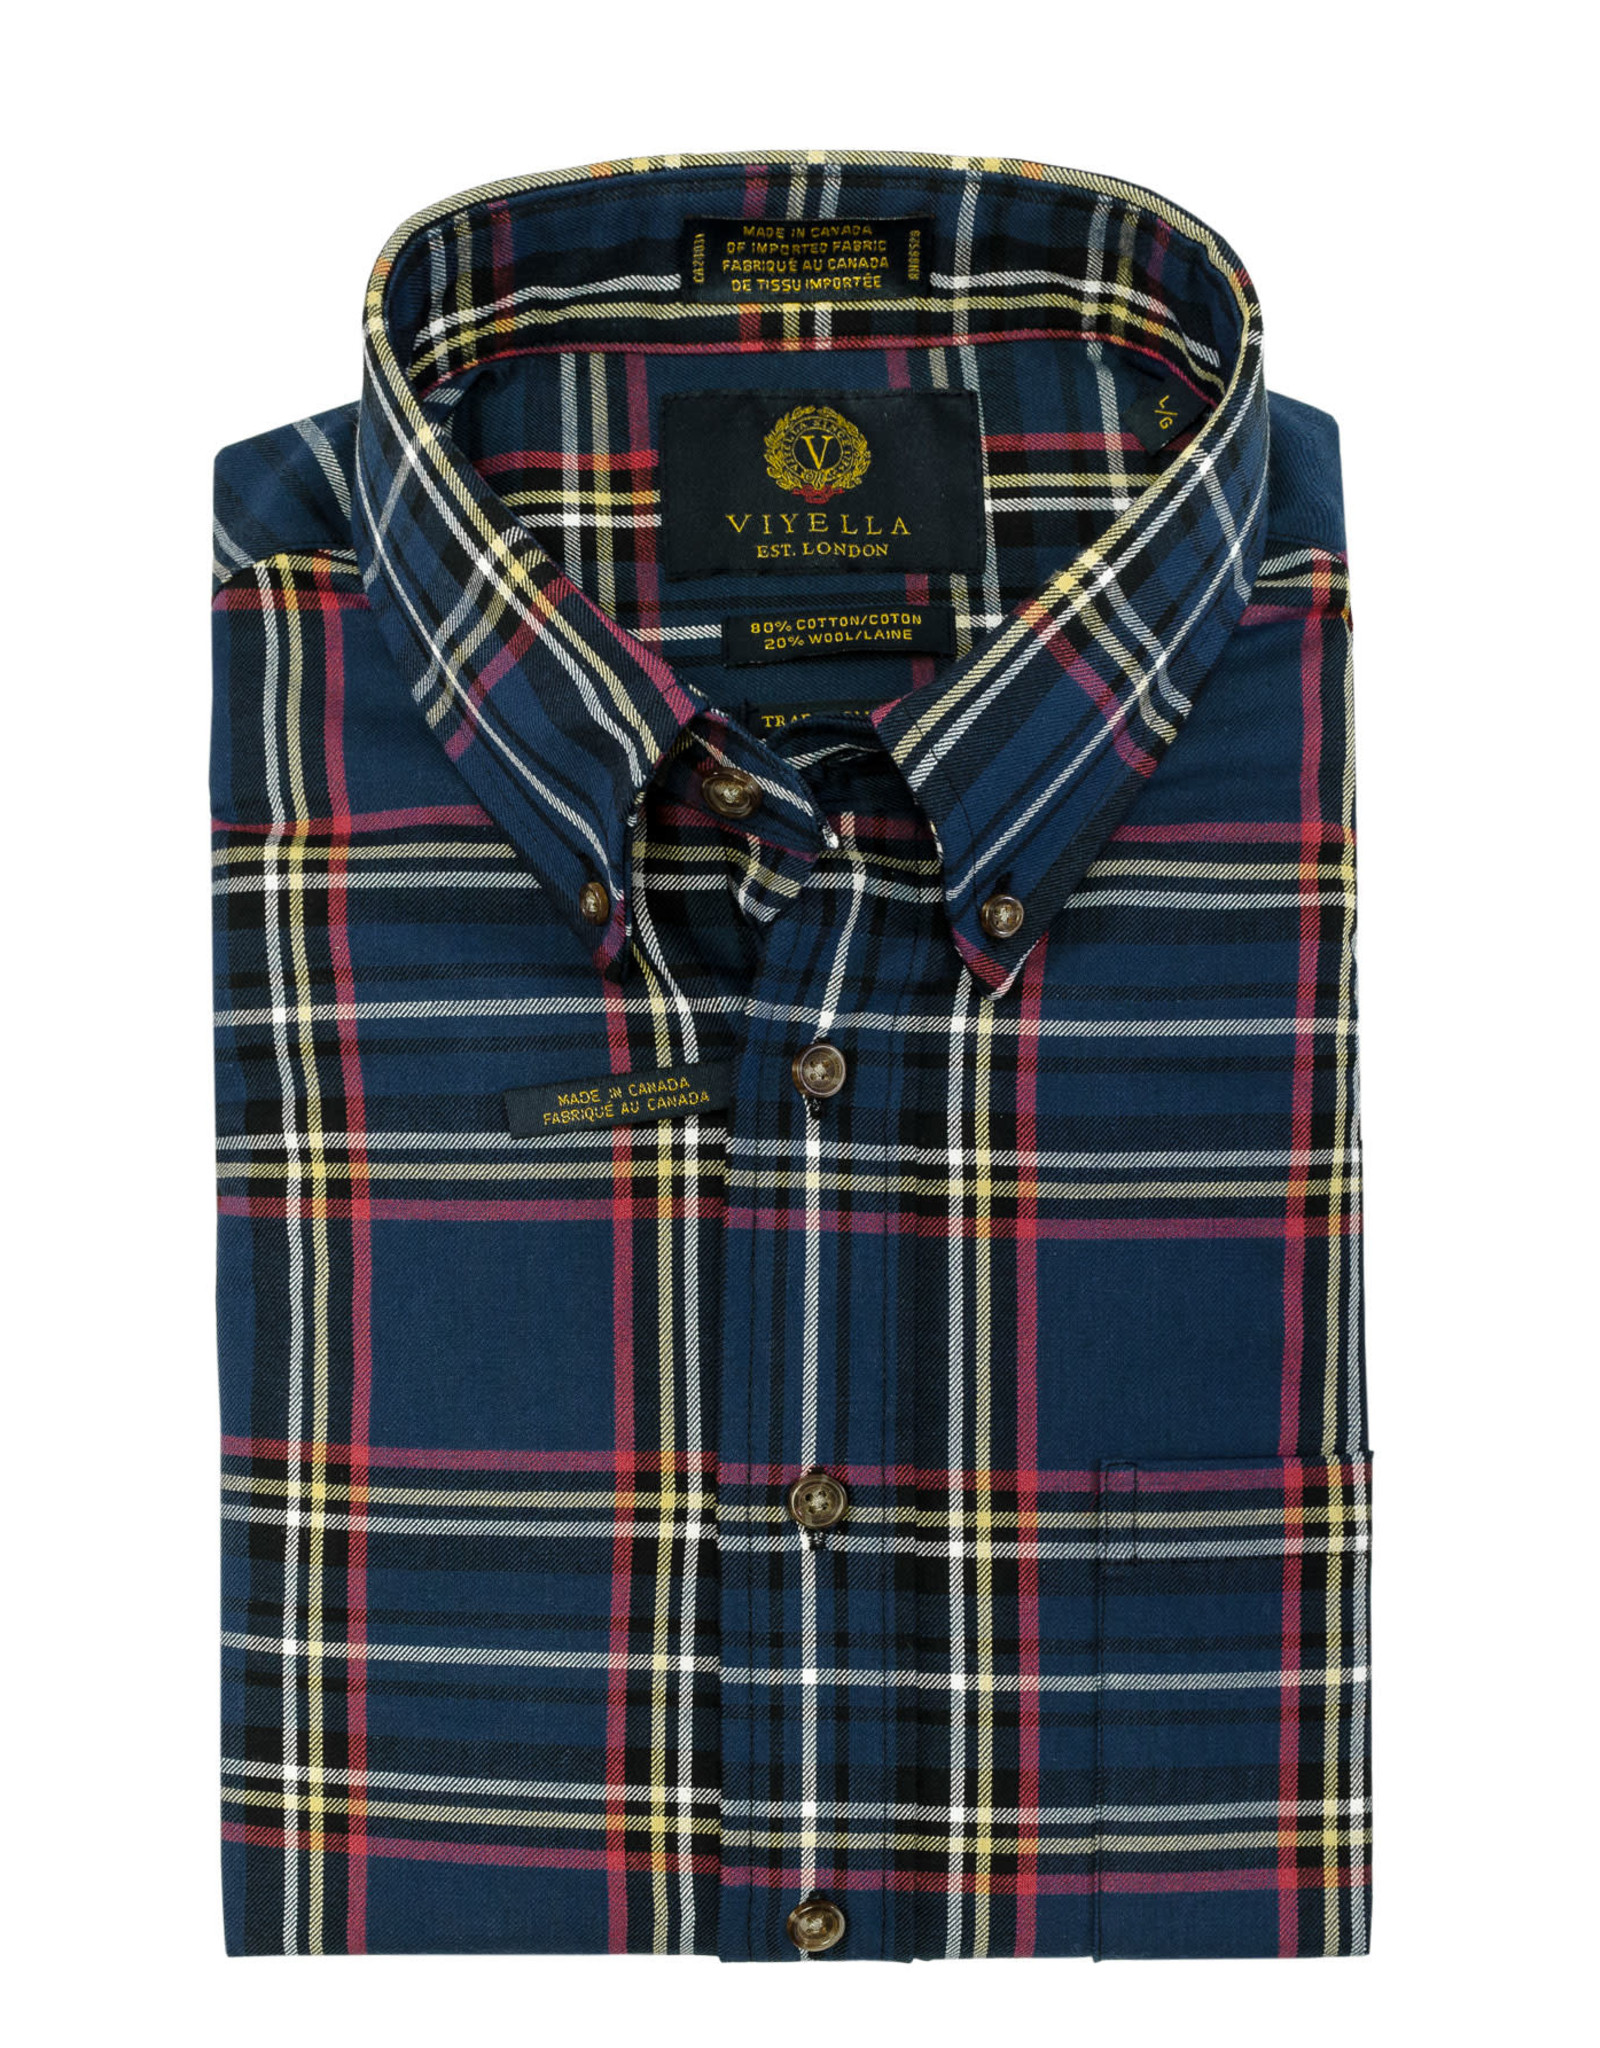 Viyella Blue Plaid Shirt 20% Wool